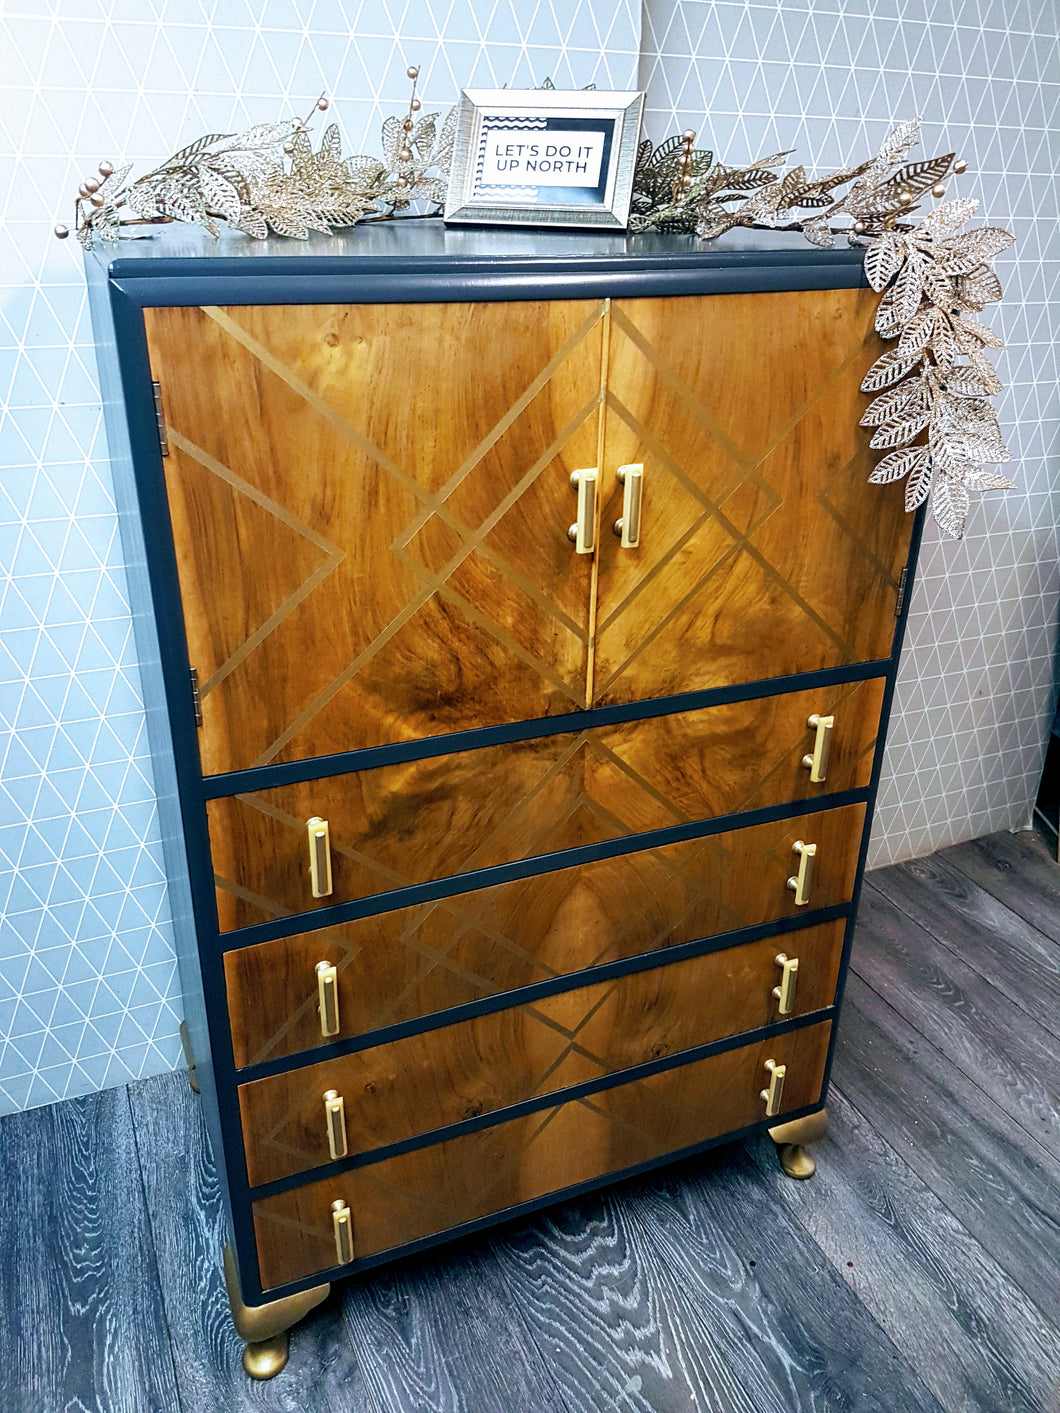 Similar can be commissioned: Tallboy Drinks cabinet with gold geometric design